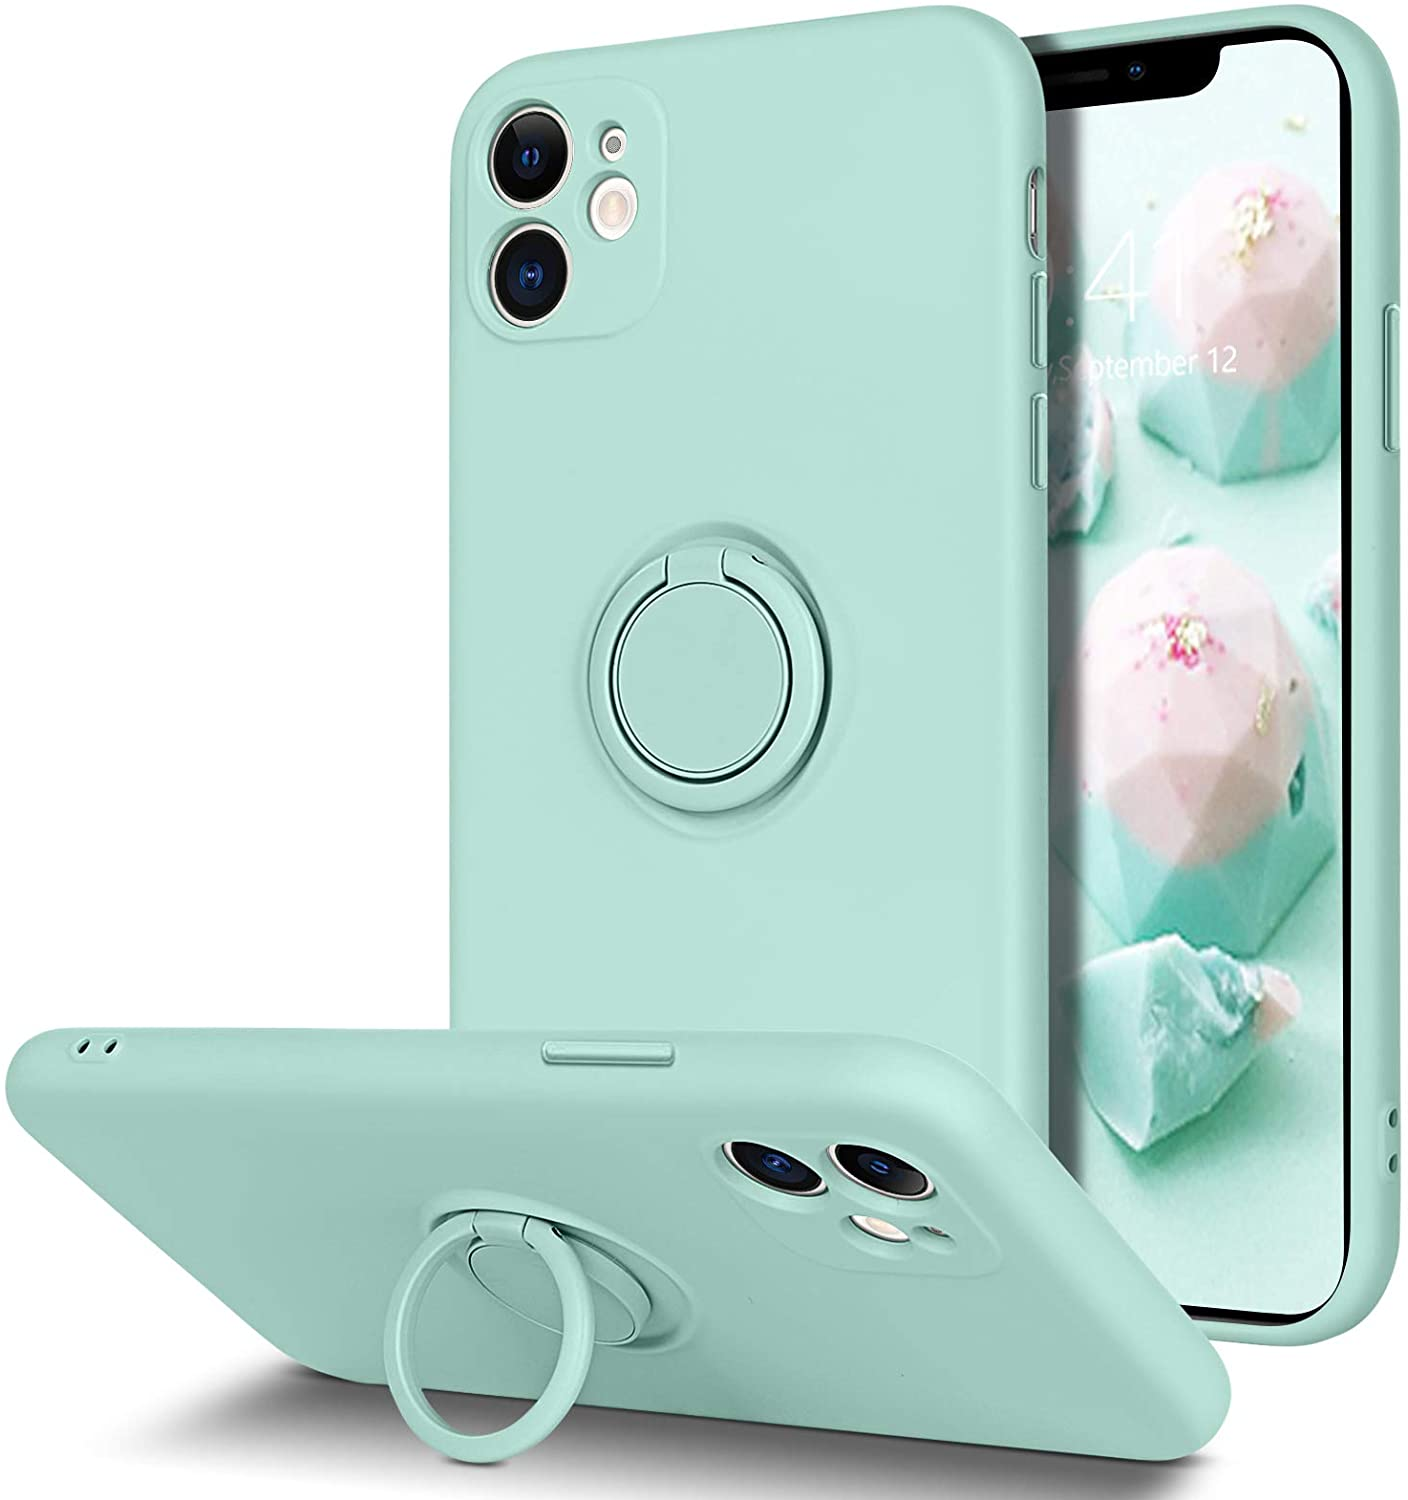 BENTOBEN iPhone 11 Case, Slim Silicone Kickstand With 360° Ring Holder Support Car Mount Soft Gel Rubber Hybrid Hard Drop Protection Shockproof Bumper Anti-Scratch NonSlip Girl Women Cover, Mint Green